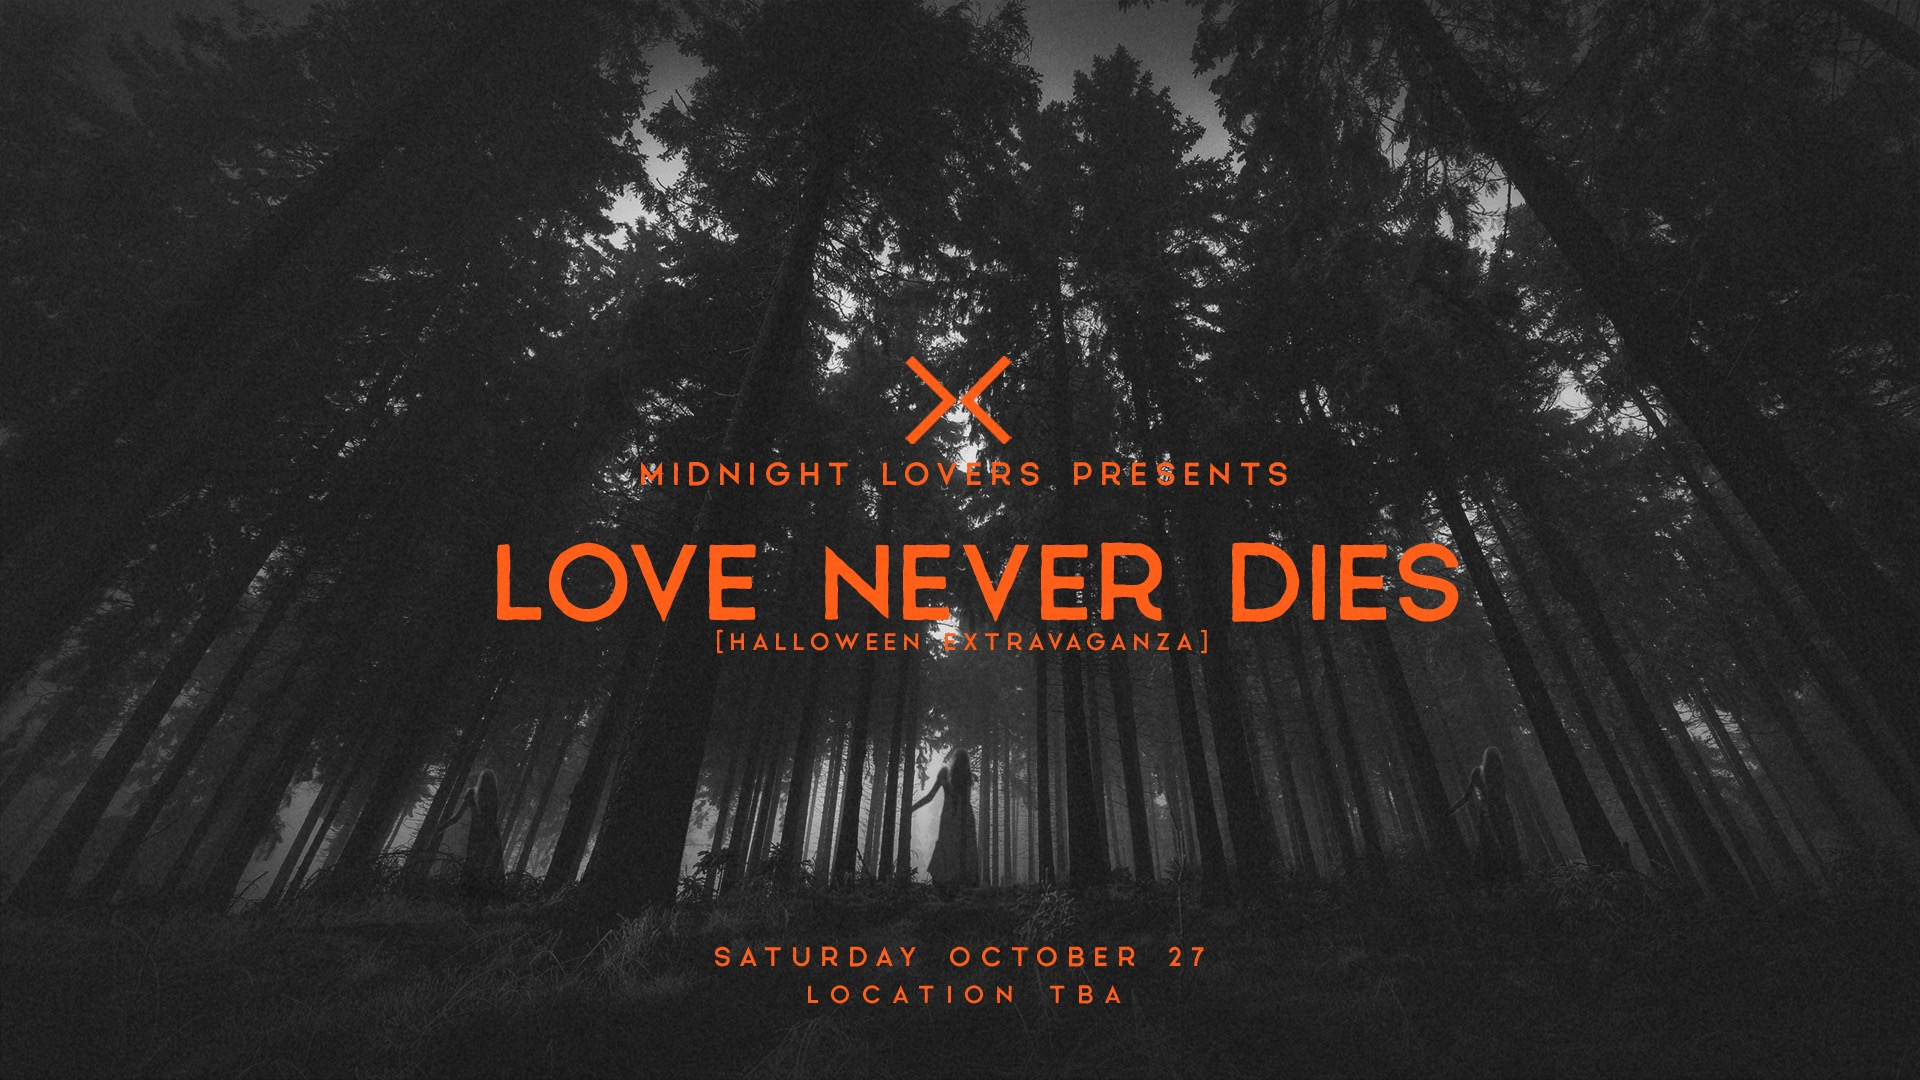 Midnight Lovers Halloween w/ Moscoman, Project Pablo, Dj Garth, Tavish  Location, TBA • Saturday October 27th, 2018 | Late Hours  •   DISCOUNTED TICKET     •